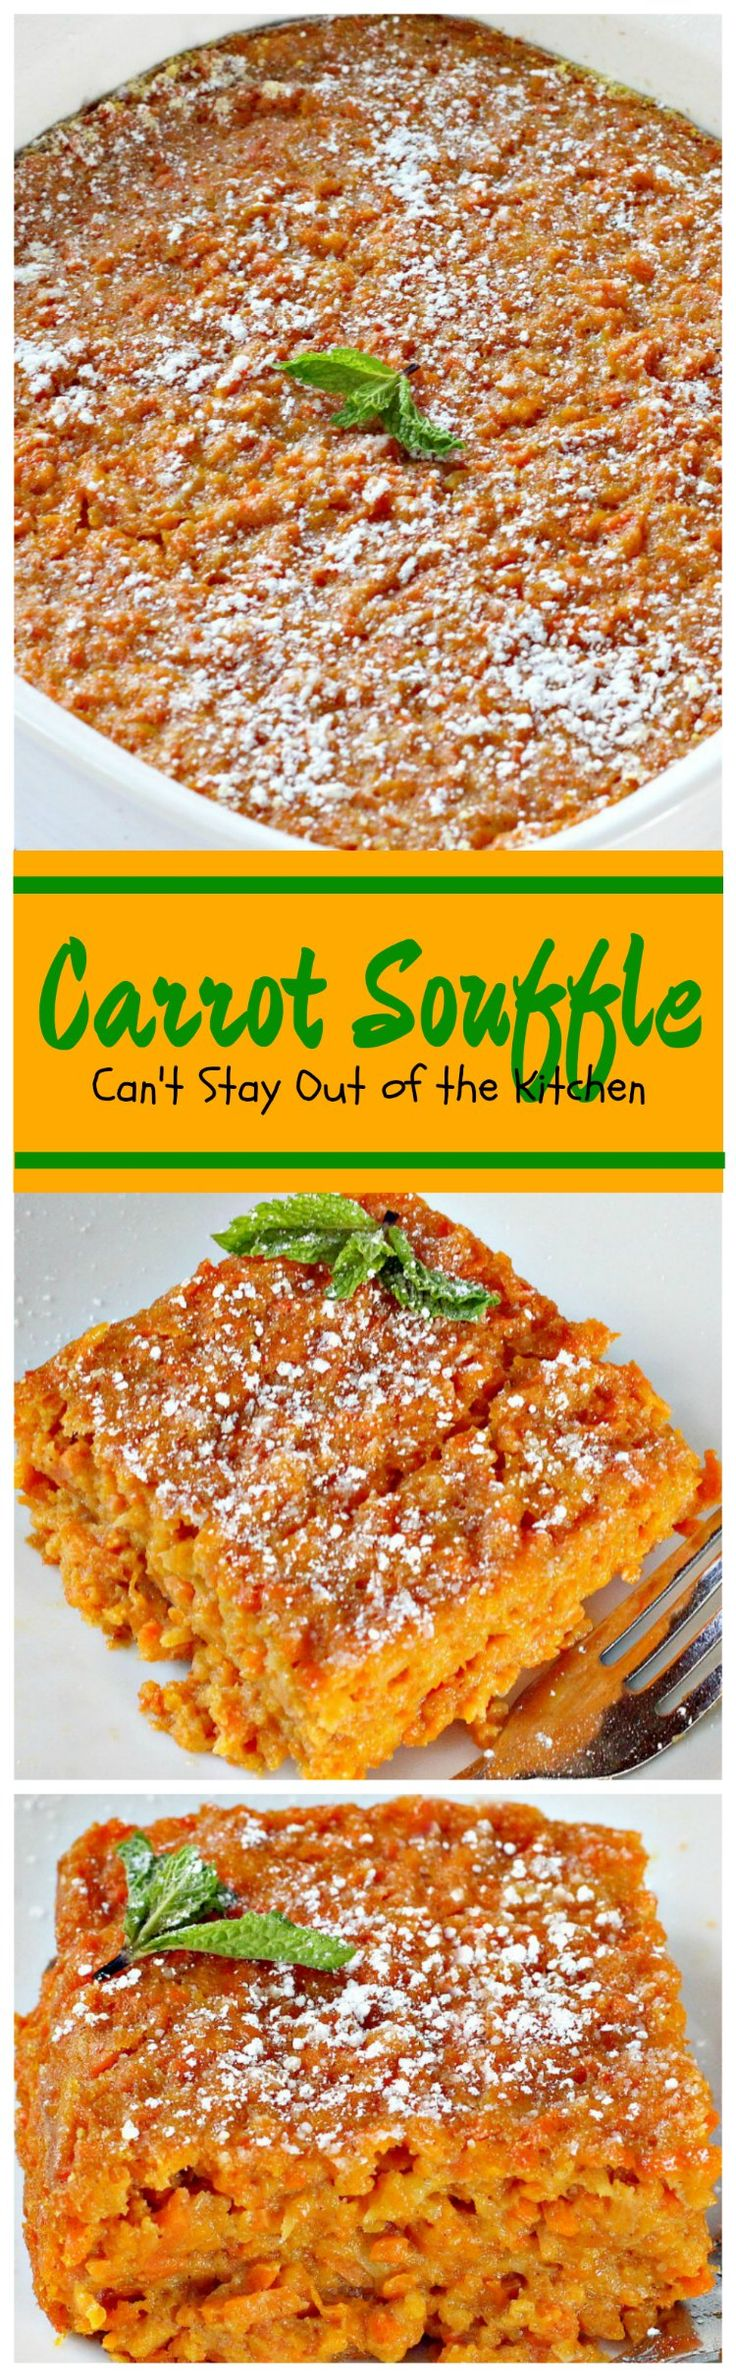 ✔️Good/super sweet Carrot Souffle  Can't Stay Out of the Kitchen